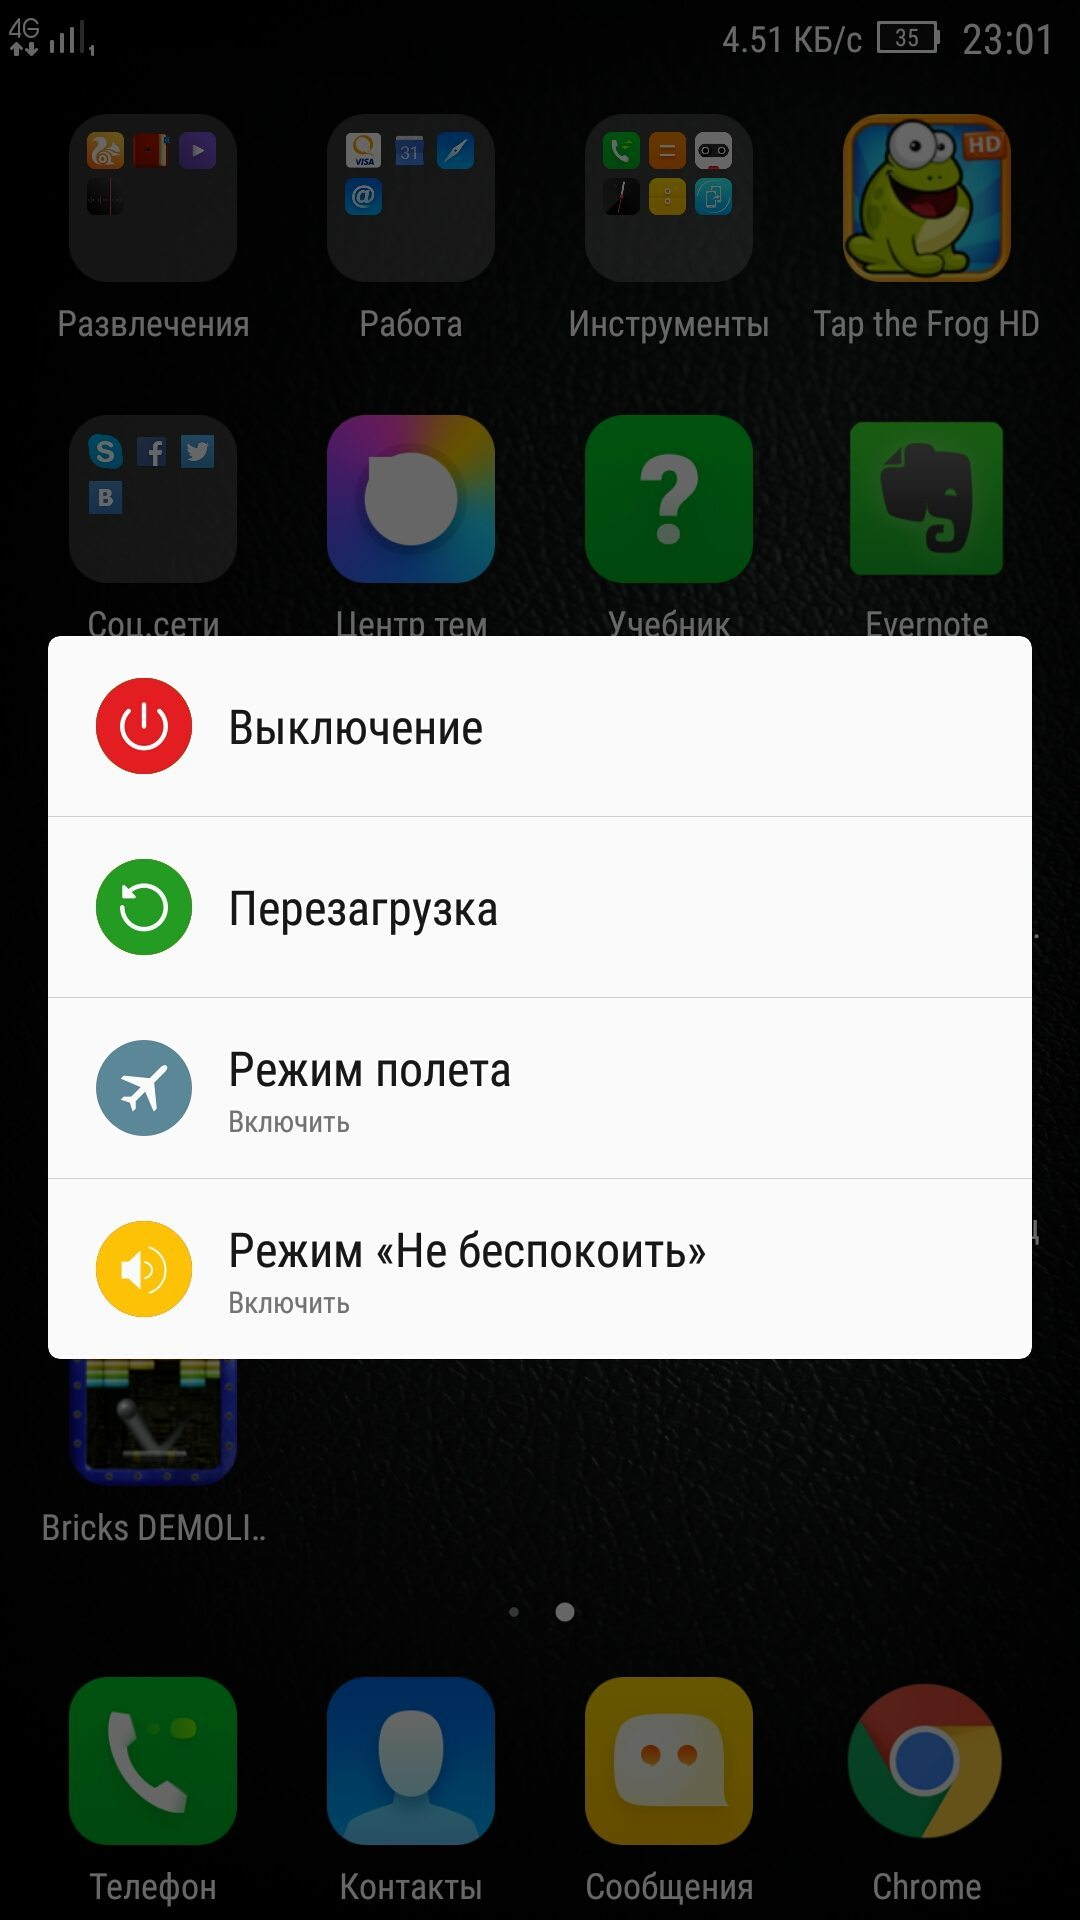 Screenshot_2015-12-17-23-01-39-125